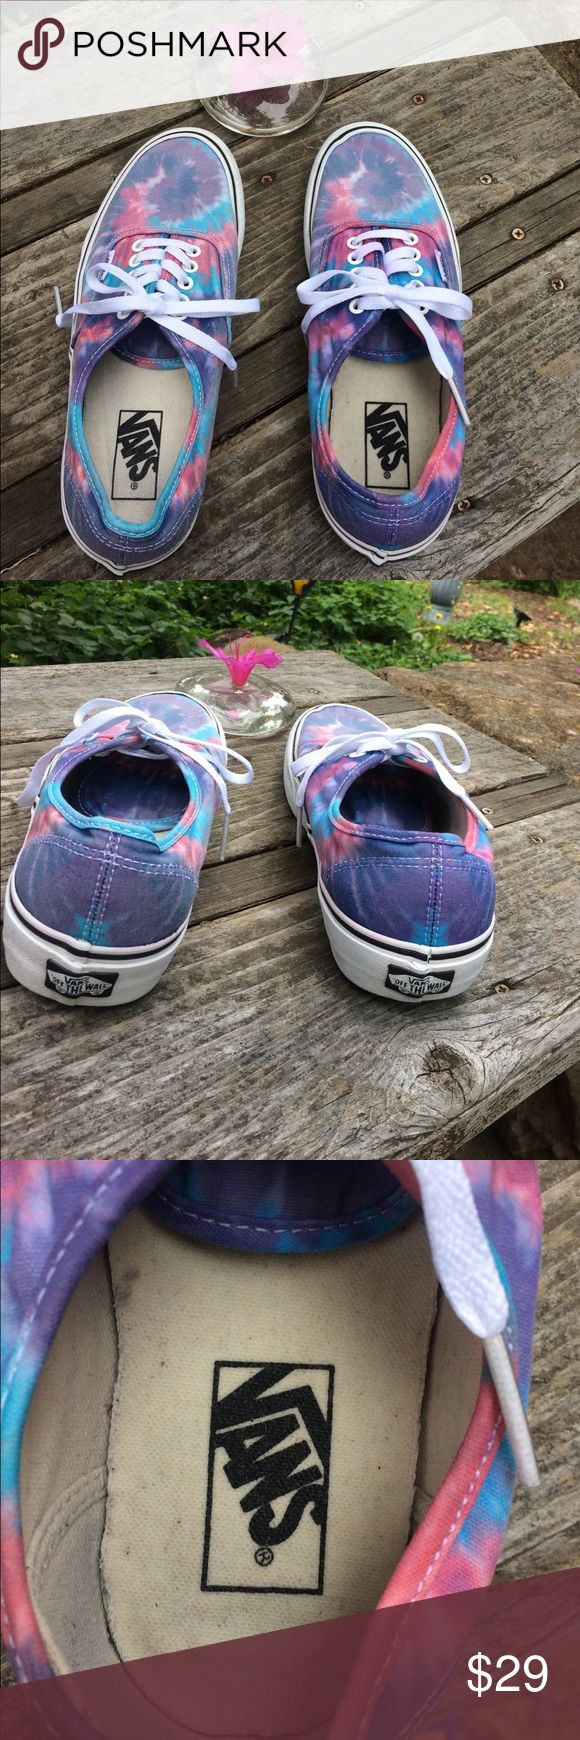 """VANS Uni-Sex Tie Dye Sneakers M7/Wmn. 8.5 WOW Gotta get these cool VANS! In pretty tie-dyed & faded hues of Purple, Pink, Turquoise & White. Uni-Sex. Men's Size 7, Women's Size 8.5. Perfect for Concerts, Skateboarding, Wearing to School, Everyday Wear, etc. Pre-owned & in good condition. They'll be your favorite """"go-to"""" shoes when you are in a fun mood. Bundle additional items from my closet to save . Thank you for shopping here. I my Posher Pals! P.S. - I ship fast! Debbie Vans Shoes…"""